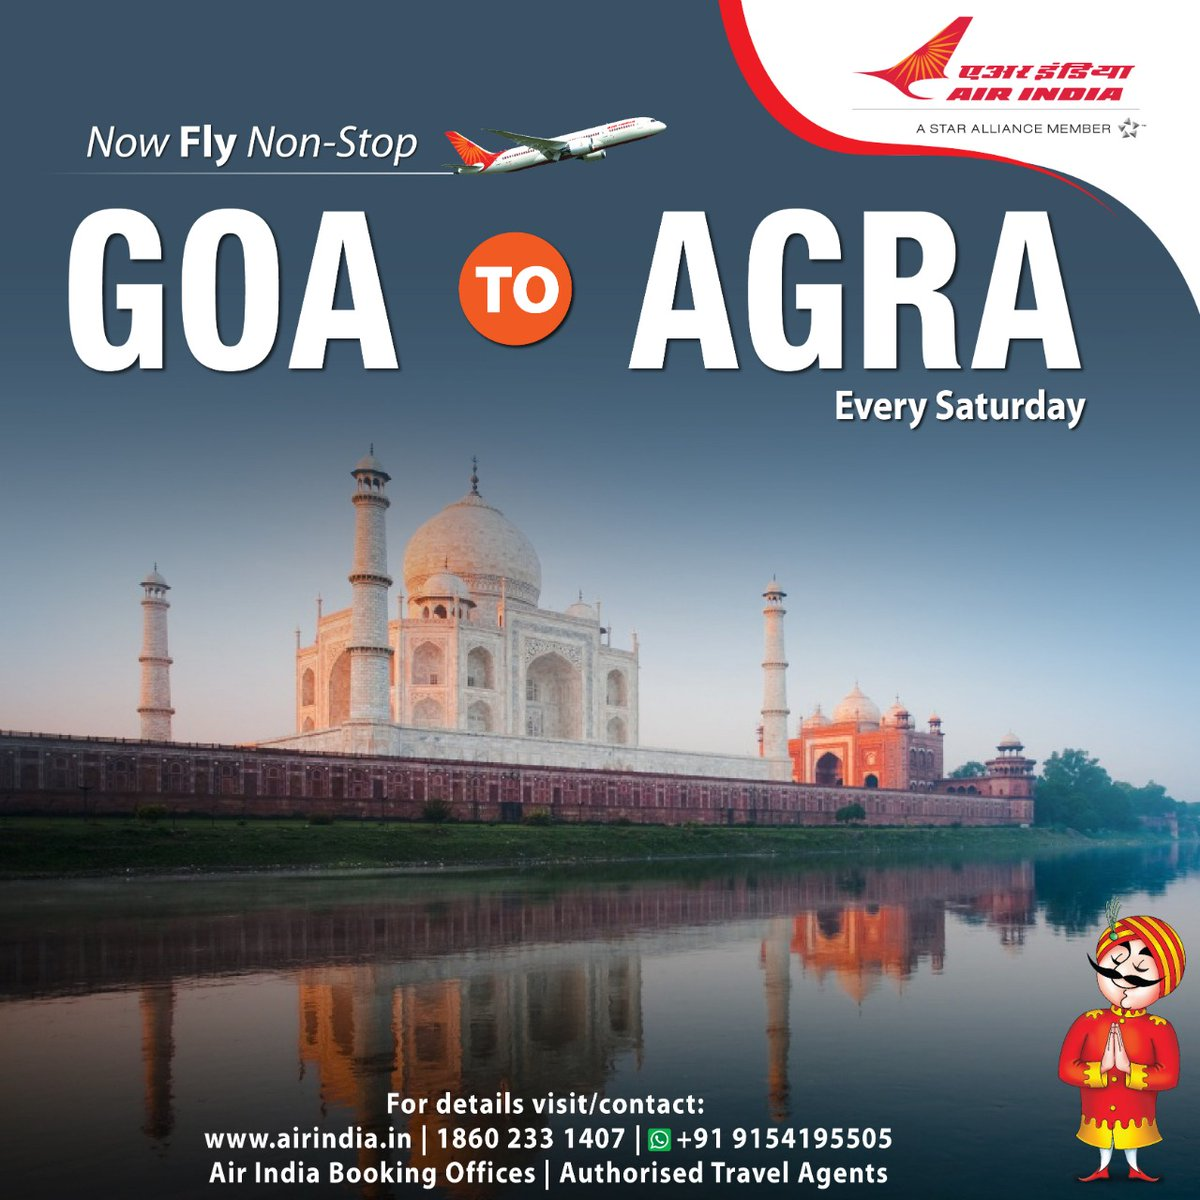 #FlyAI : Now fly non-stop from Goa to Agra every saturday.  To book seats, please visit our website